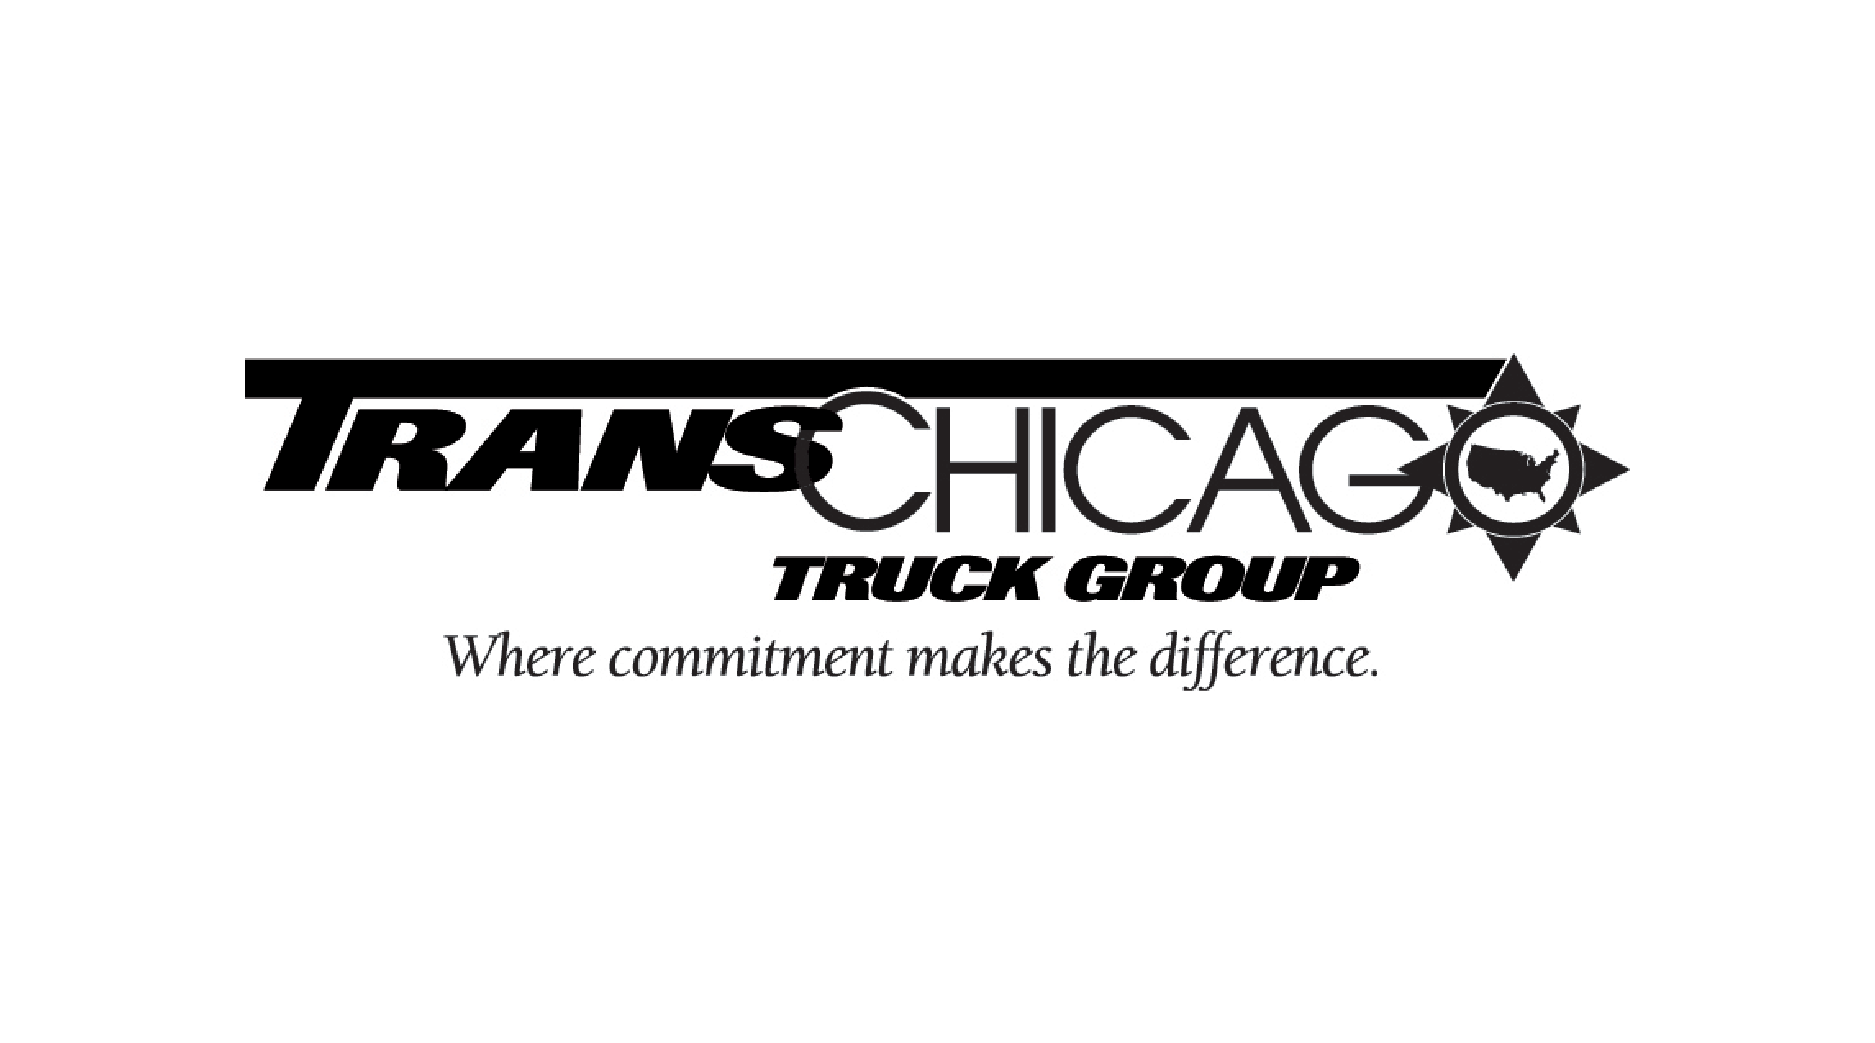 asset-logo_trans-chicago-trucking.png